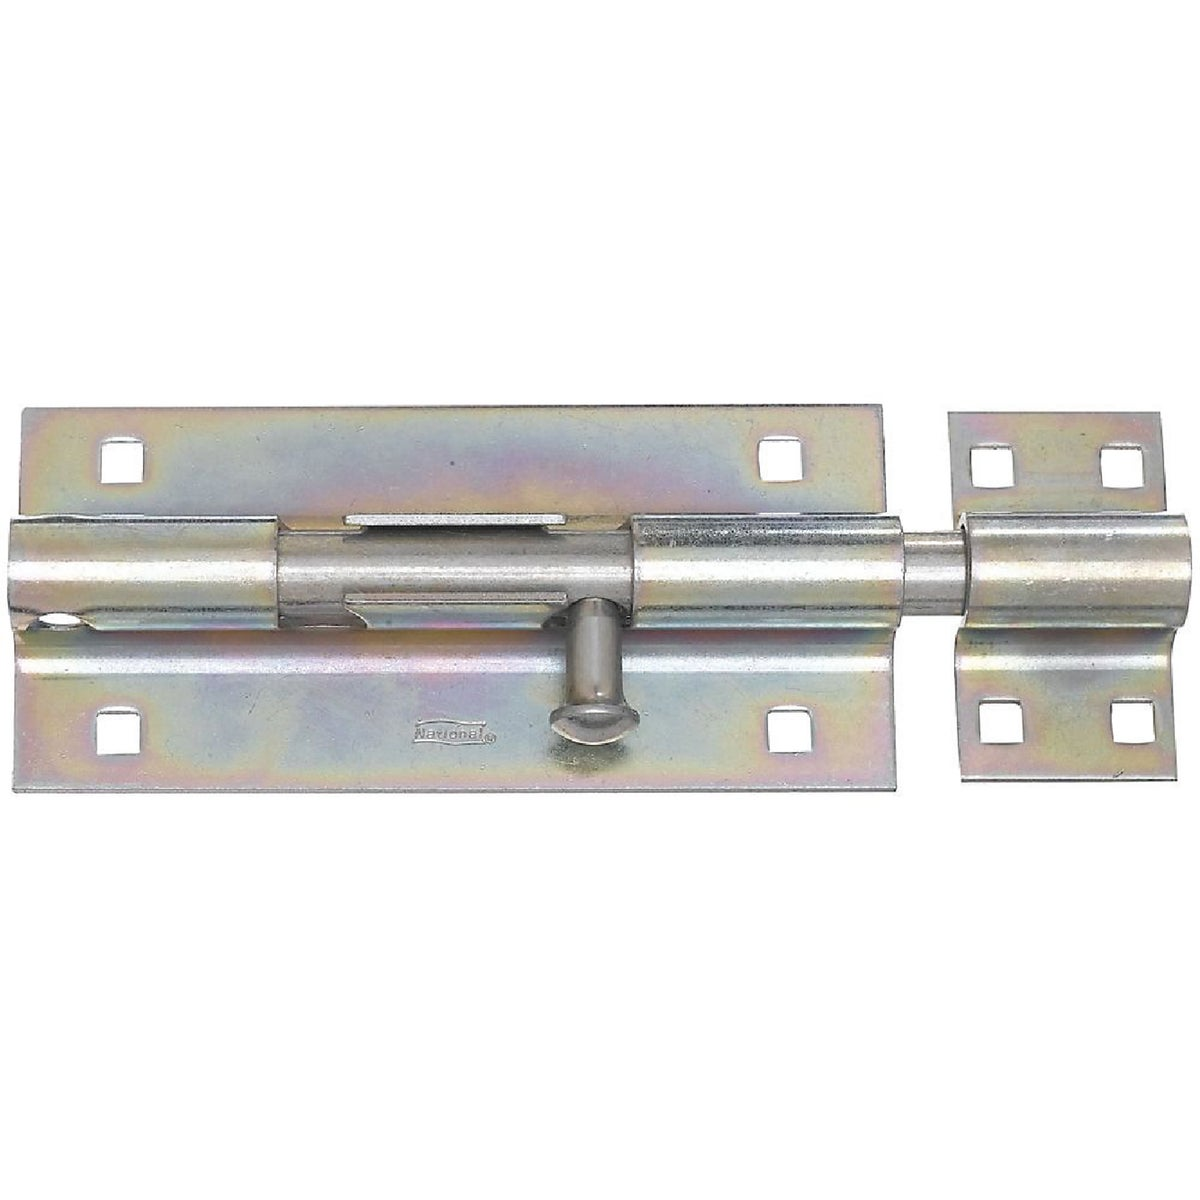 "8"" HEAVY BARREL BOLT - N151167 by National Mfg Co"